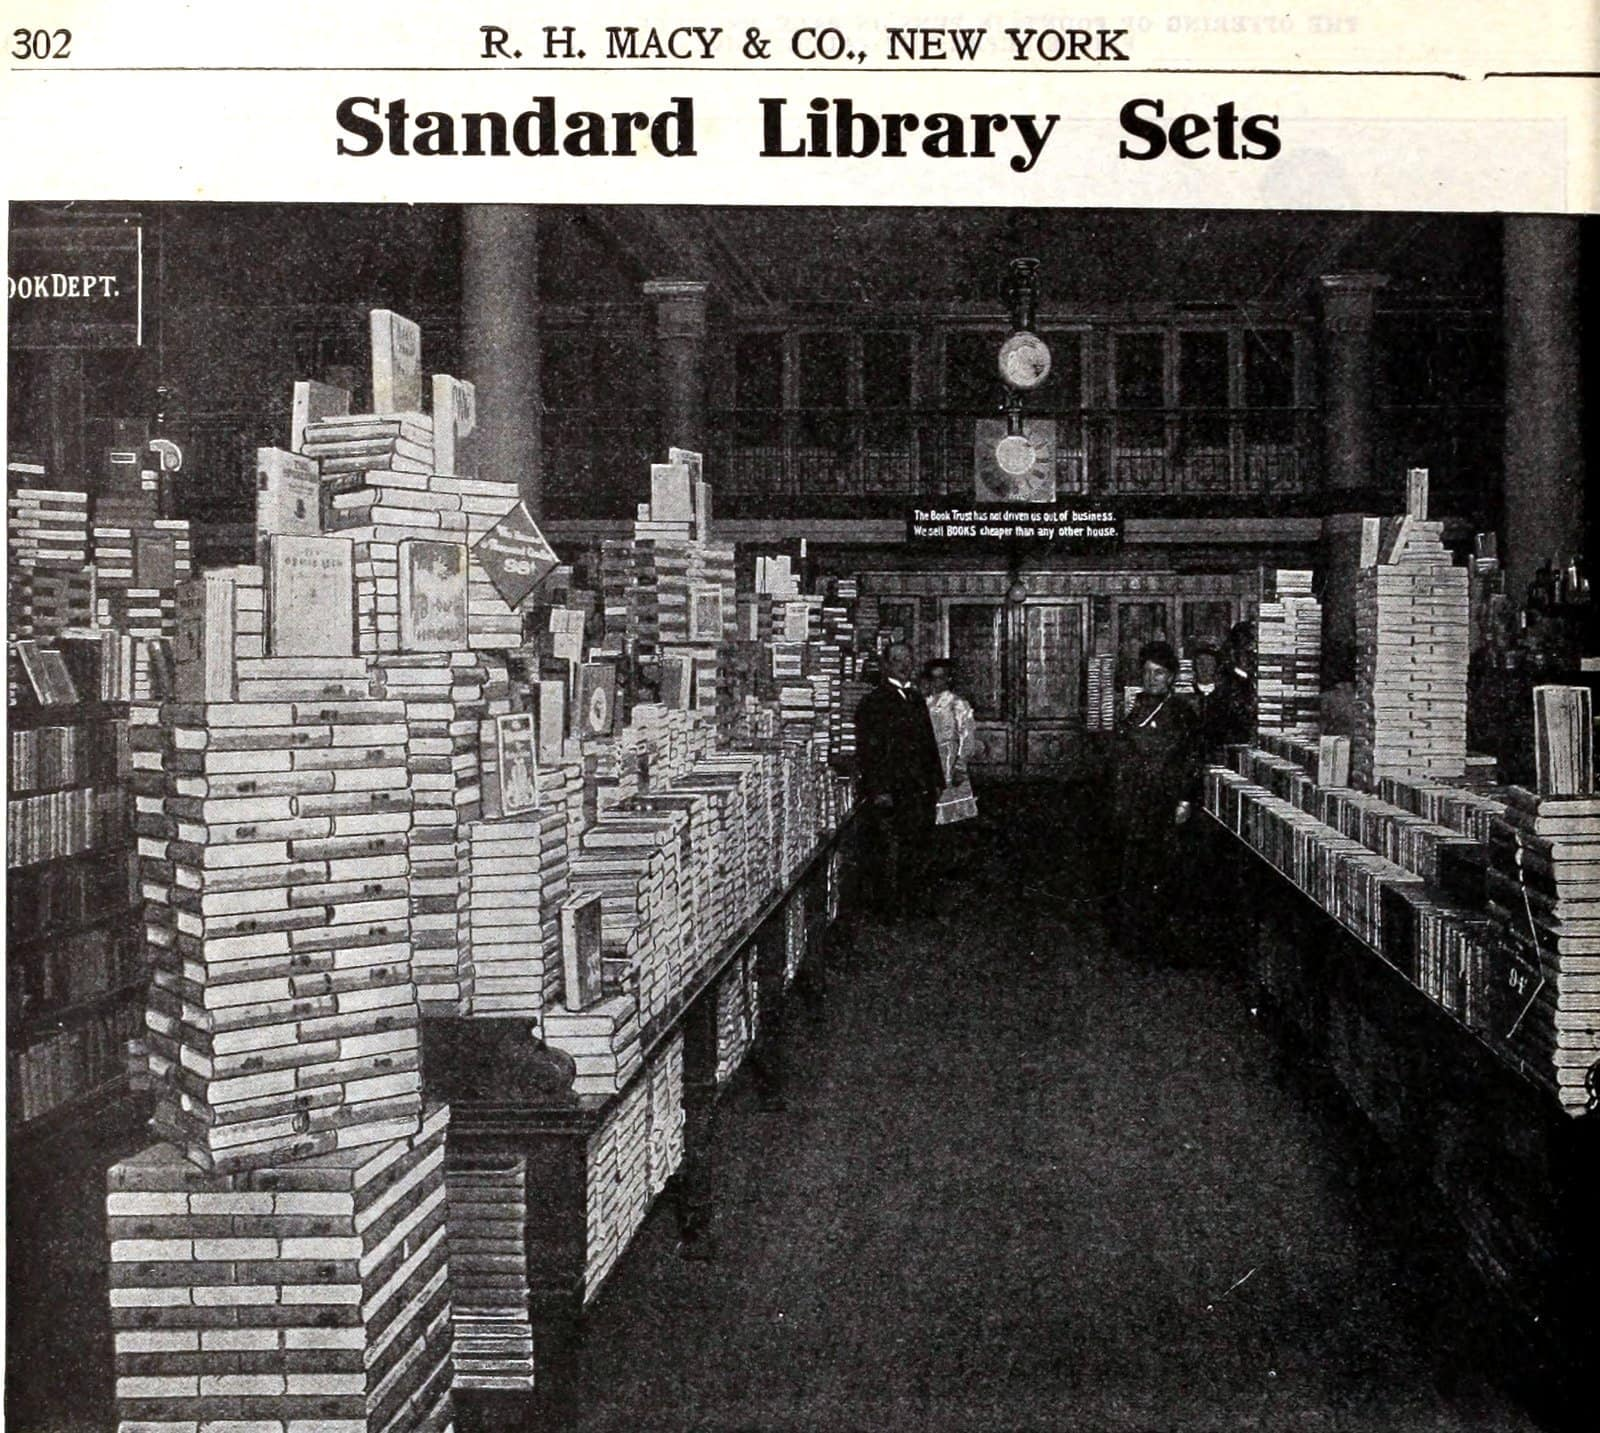 Books department at the vintage Macy's store in NYC (1900s)